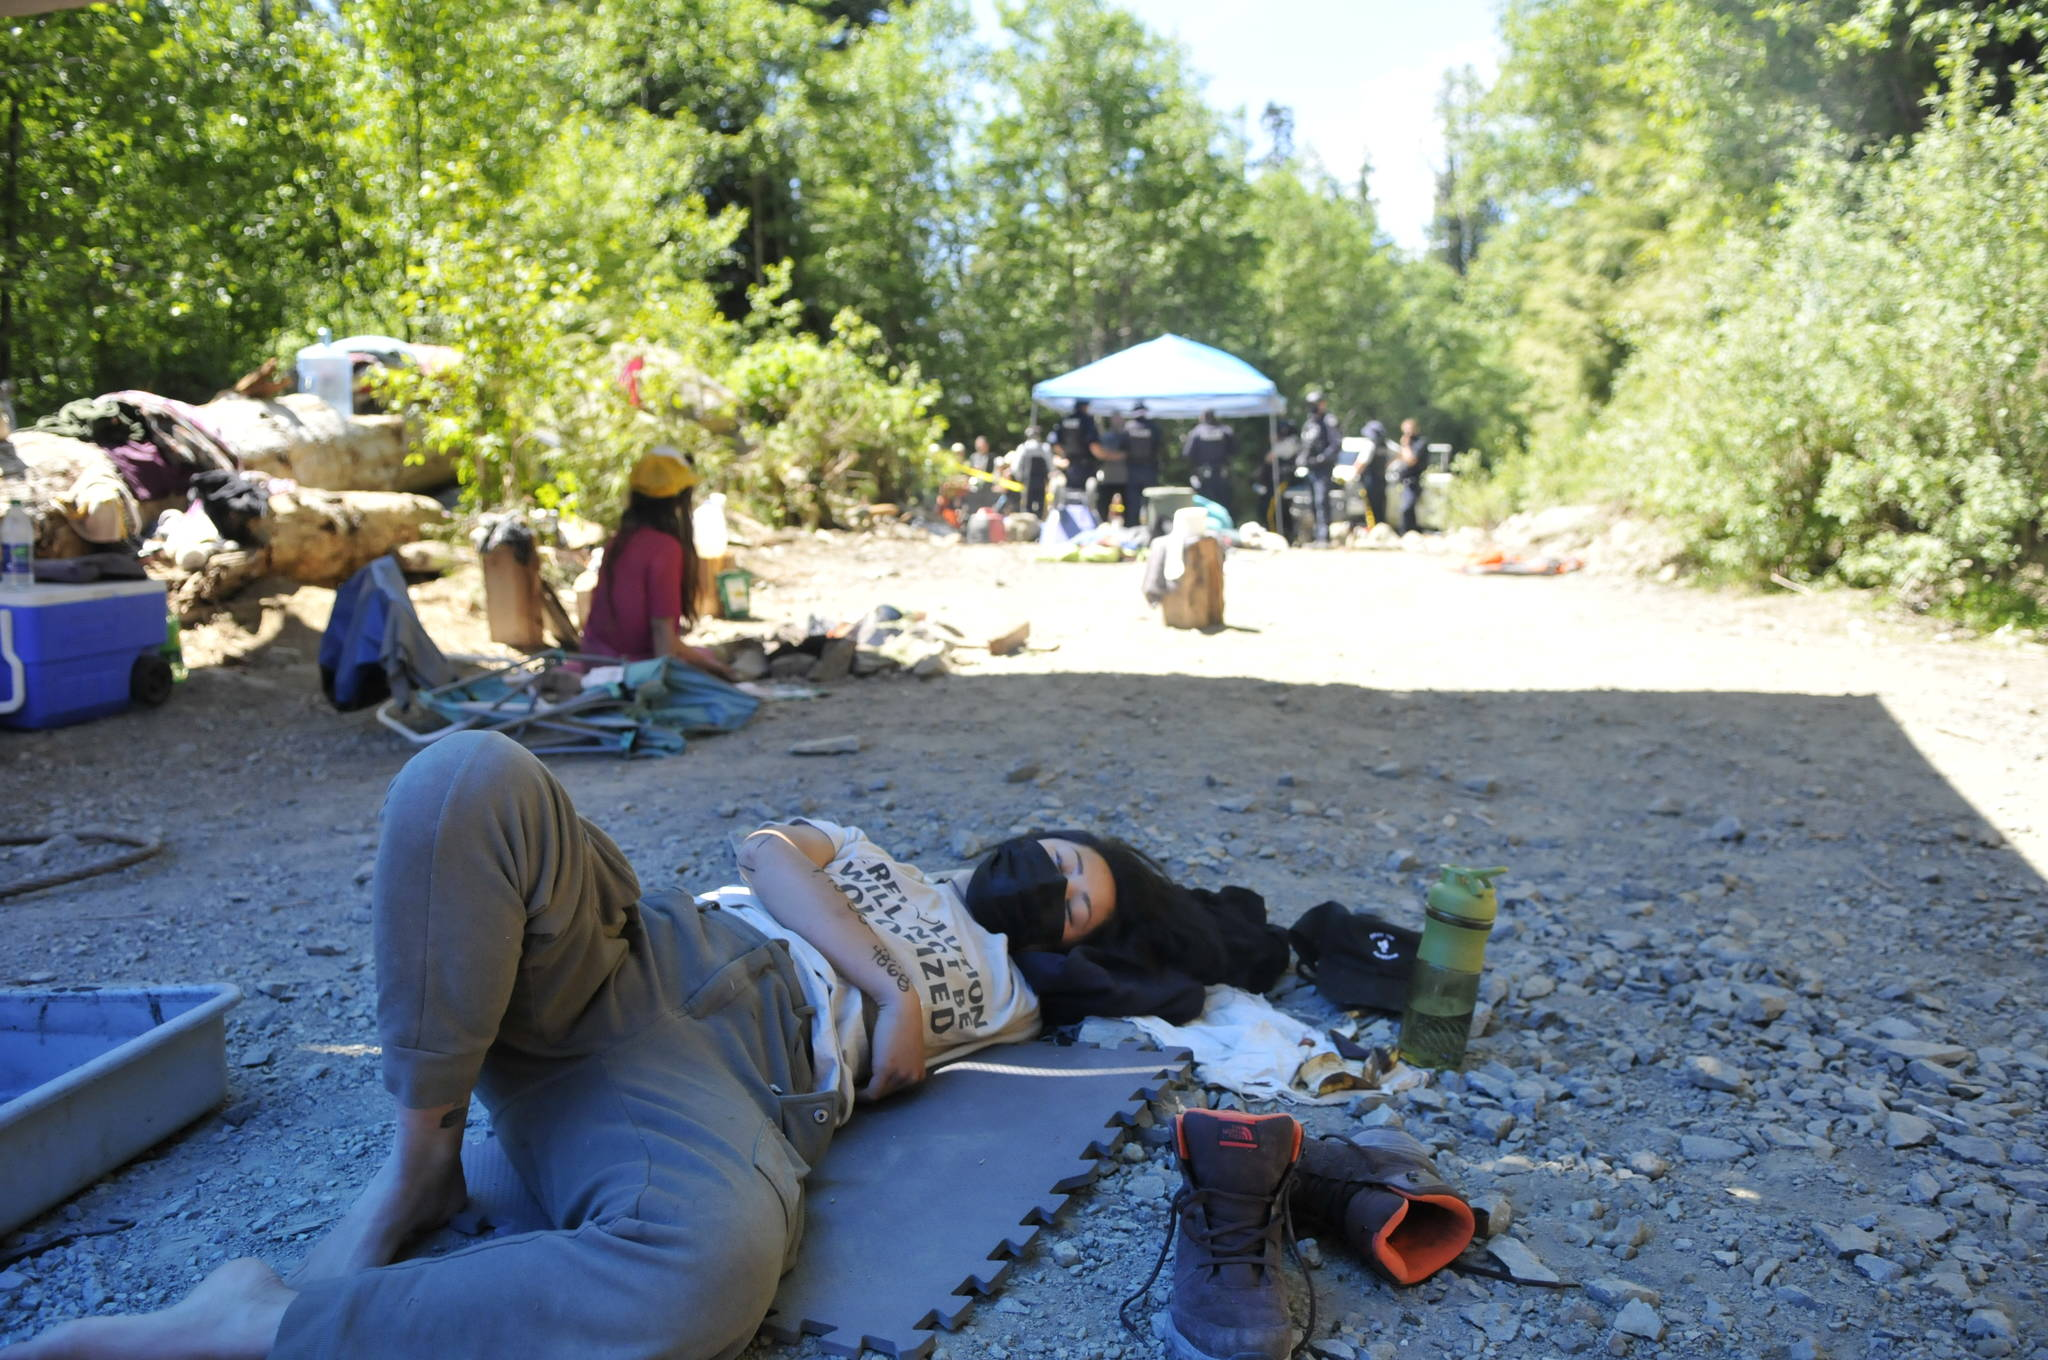 A 26-year-old in a sleeping dragon rested in the shade while police conferred in the background. (Zoe Ducklow/News Staff)